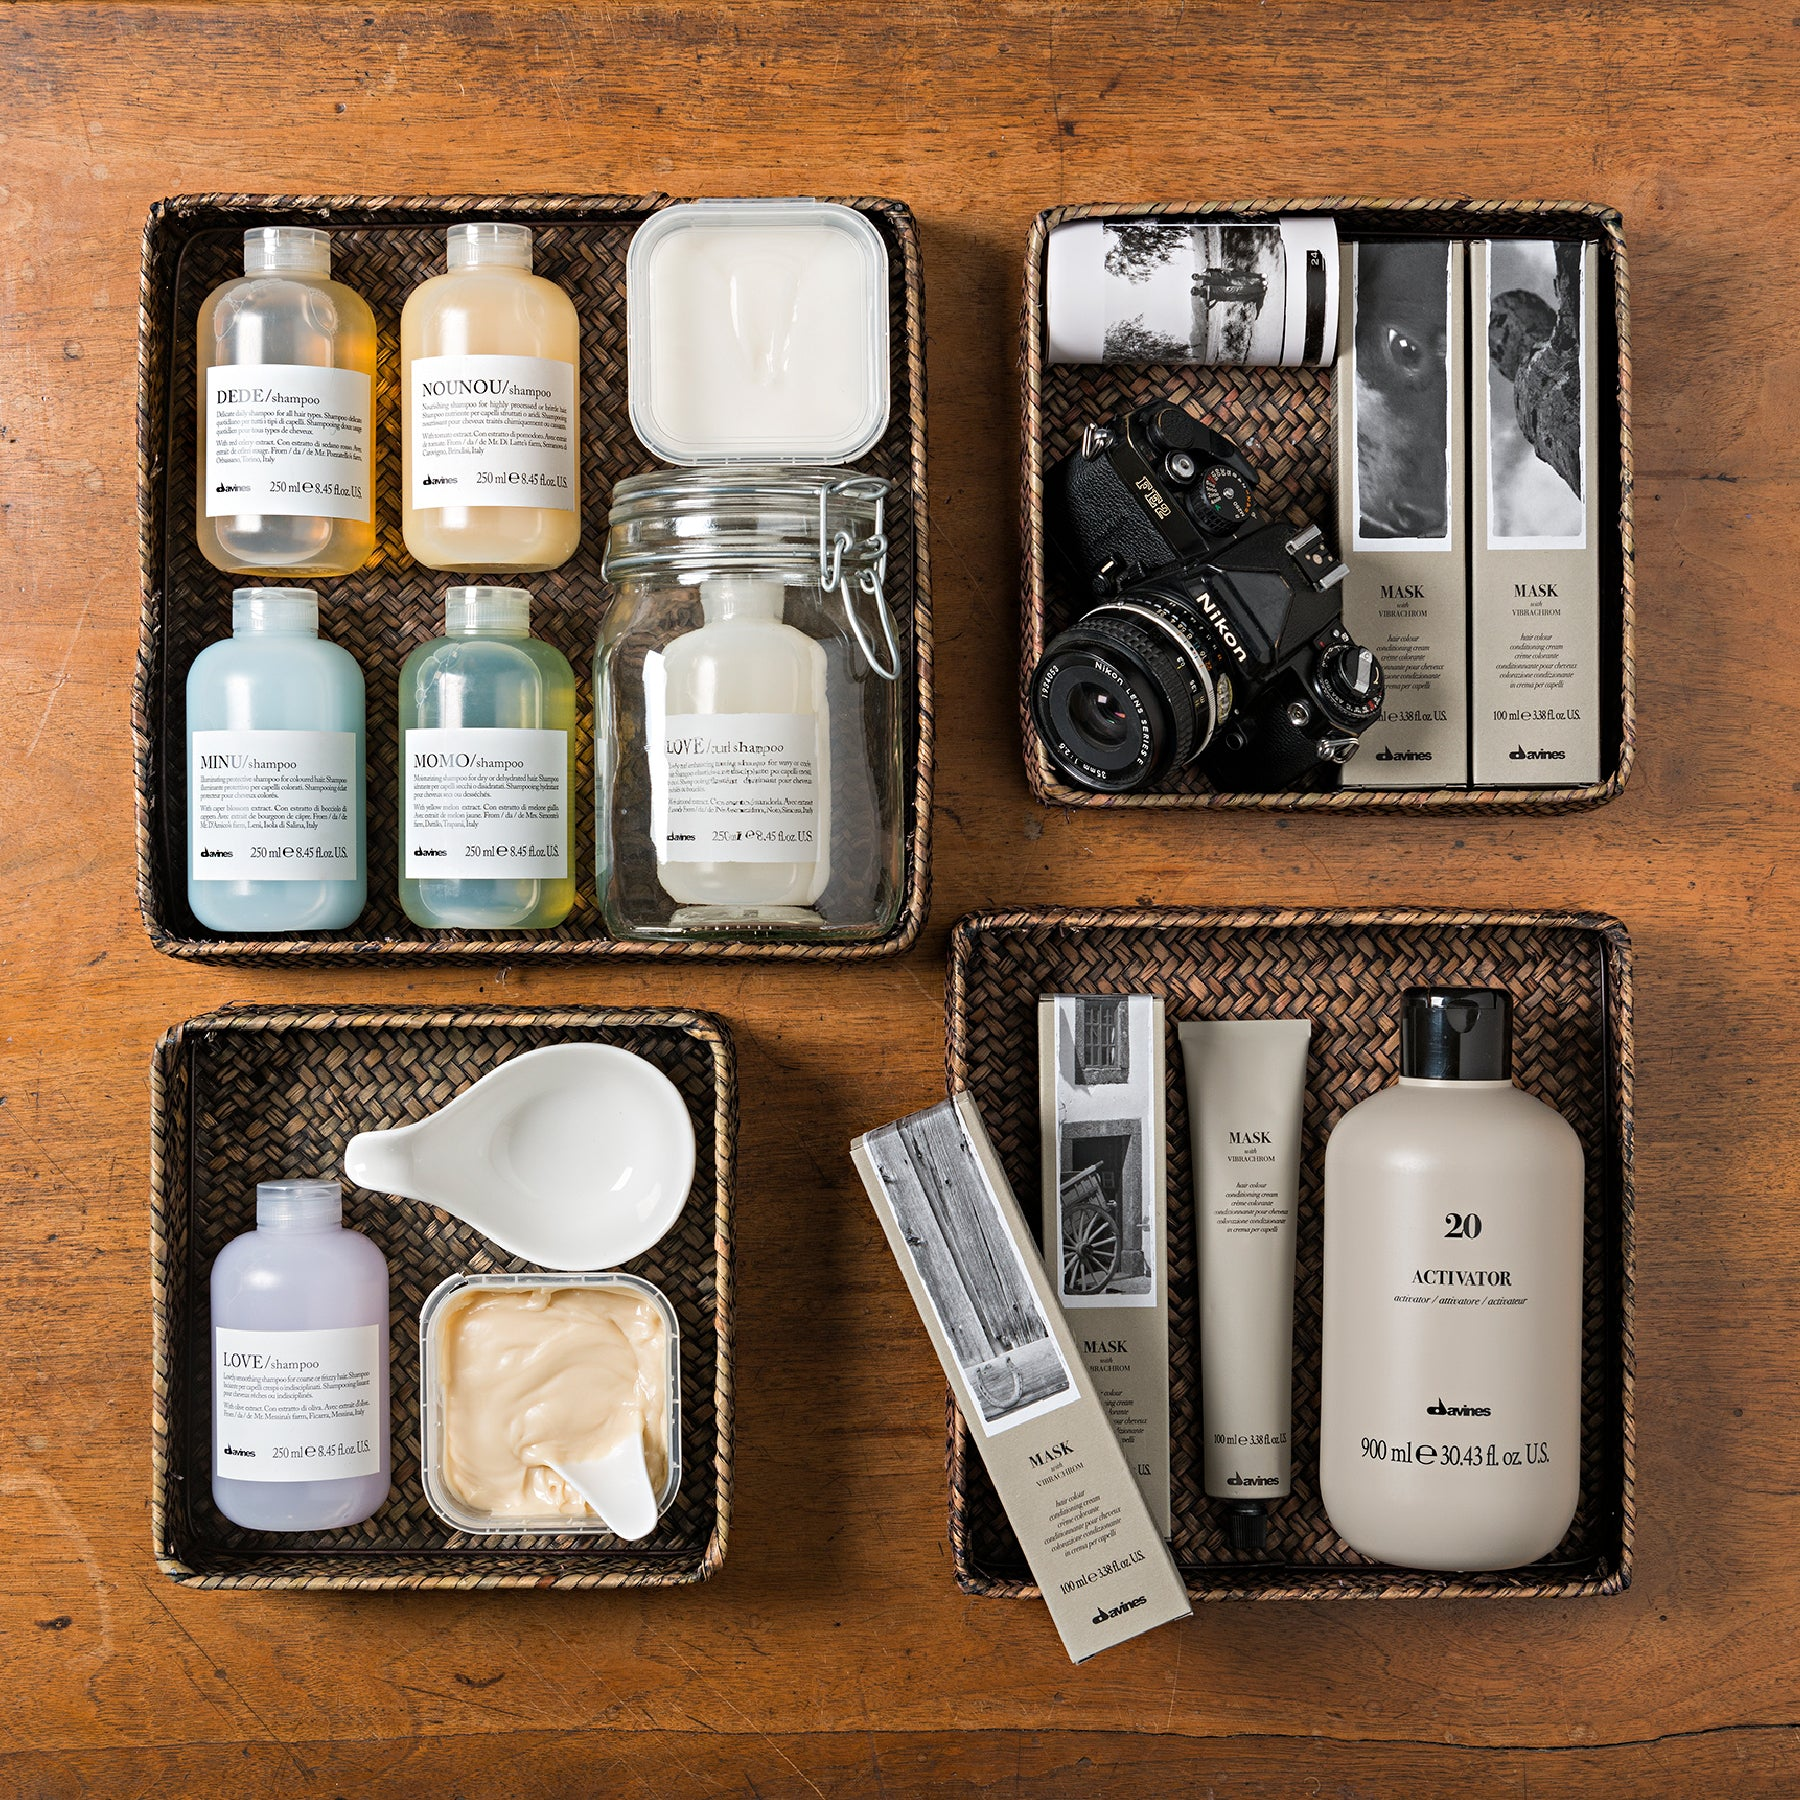 image of davines hair care products in 4 boxes